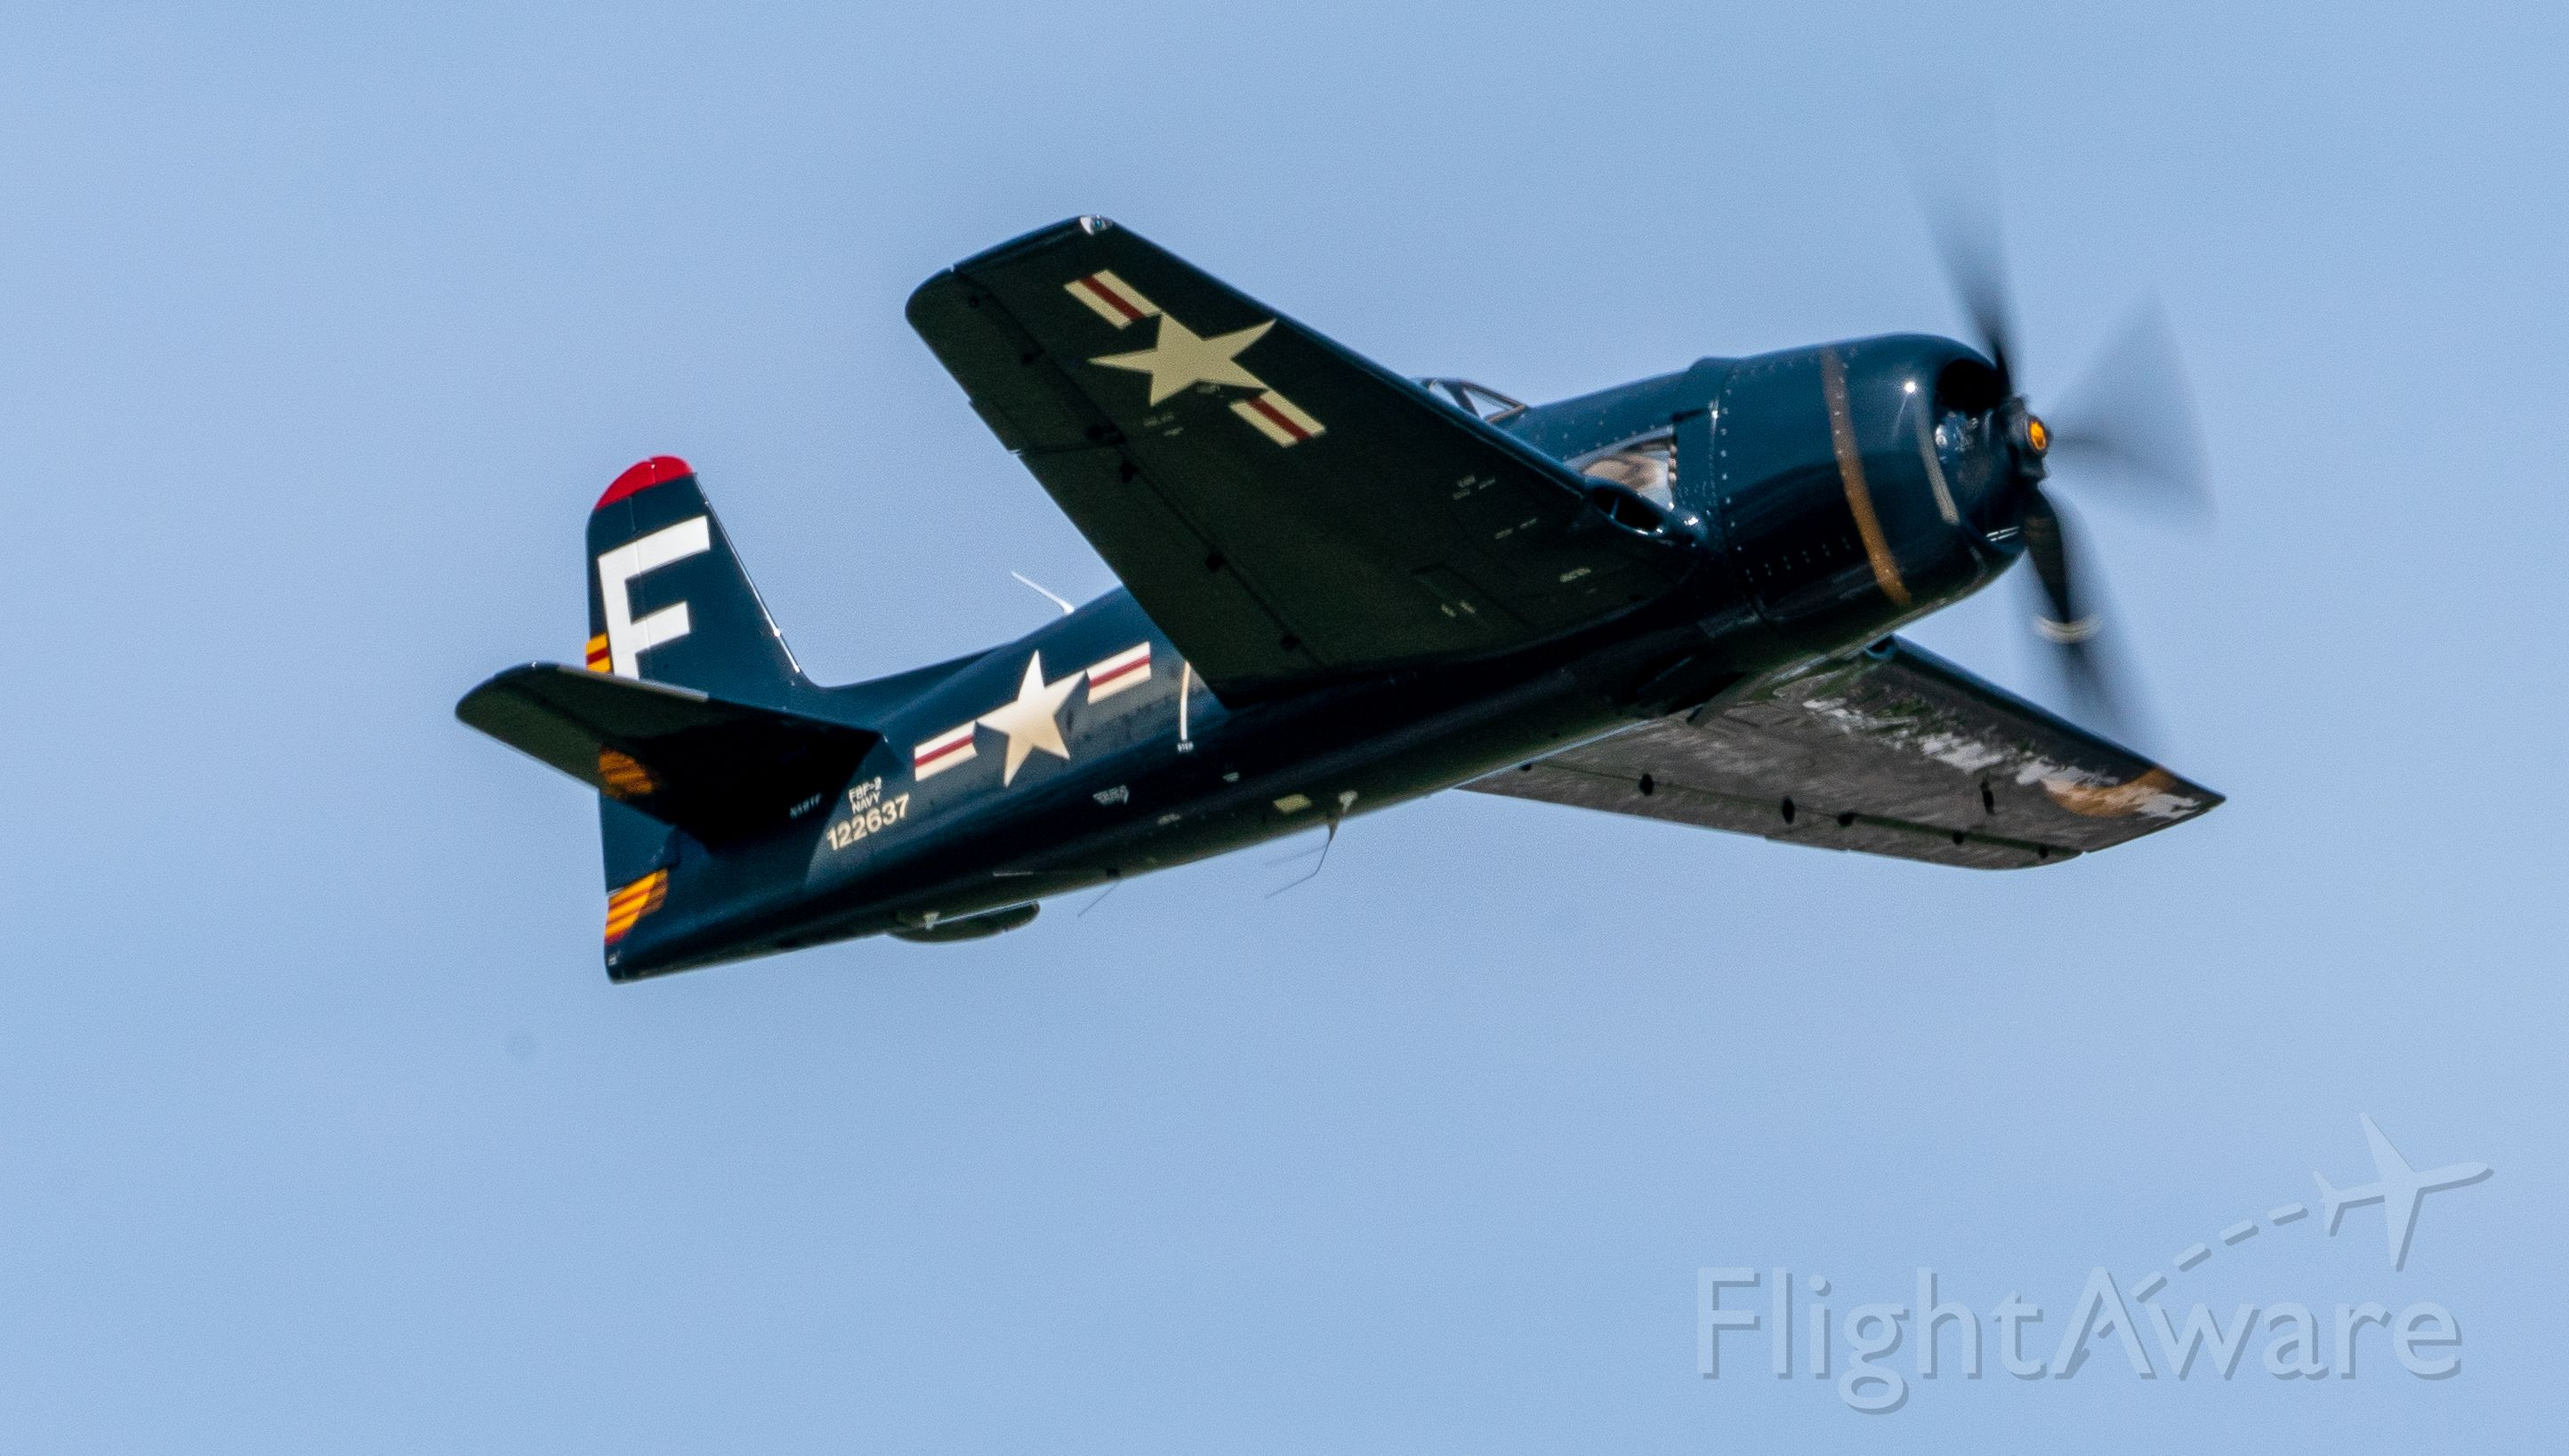 12-2637 — - A privately owned F8F-2 Bearcat departs KEFD on 4/2/2021